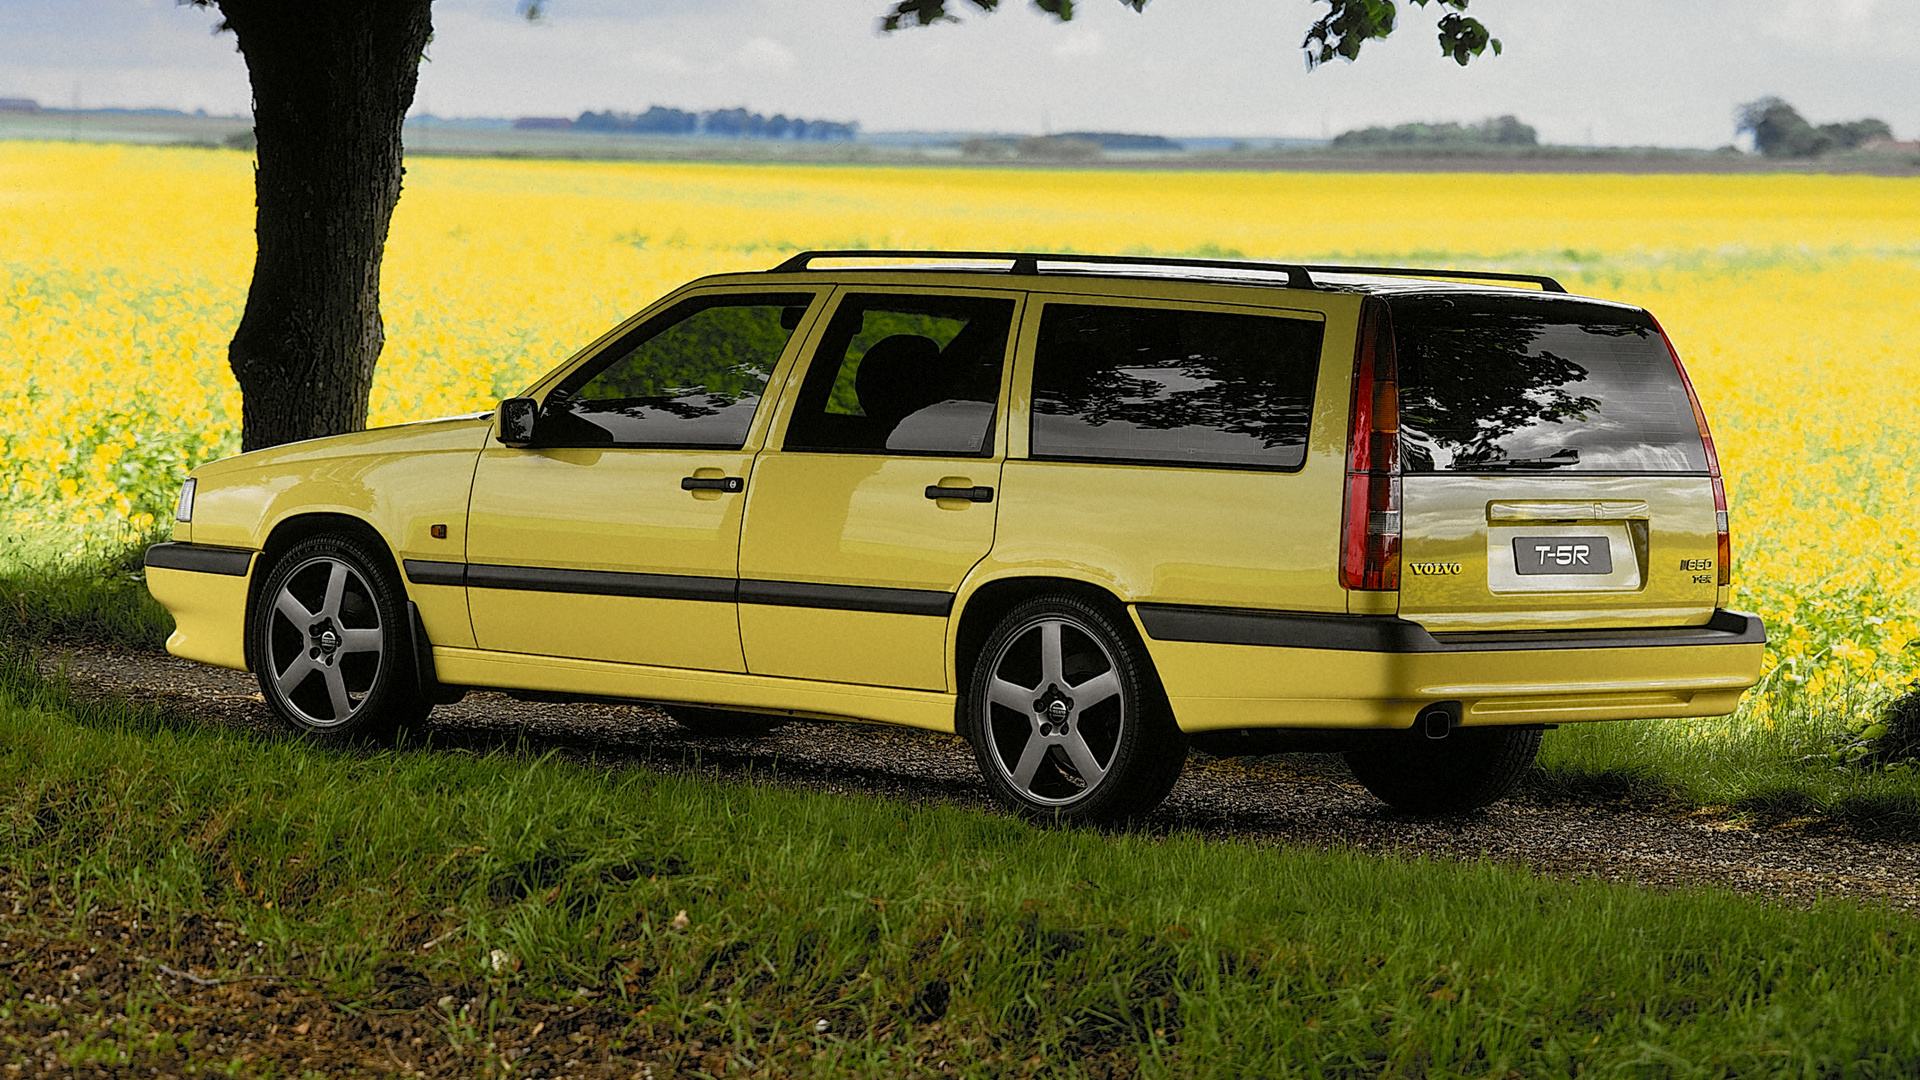 1995 volvo 850 r kombi wallpapers and hd images car pixel. Black Bedroom Furniture Sets. Home Design Ideas